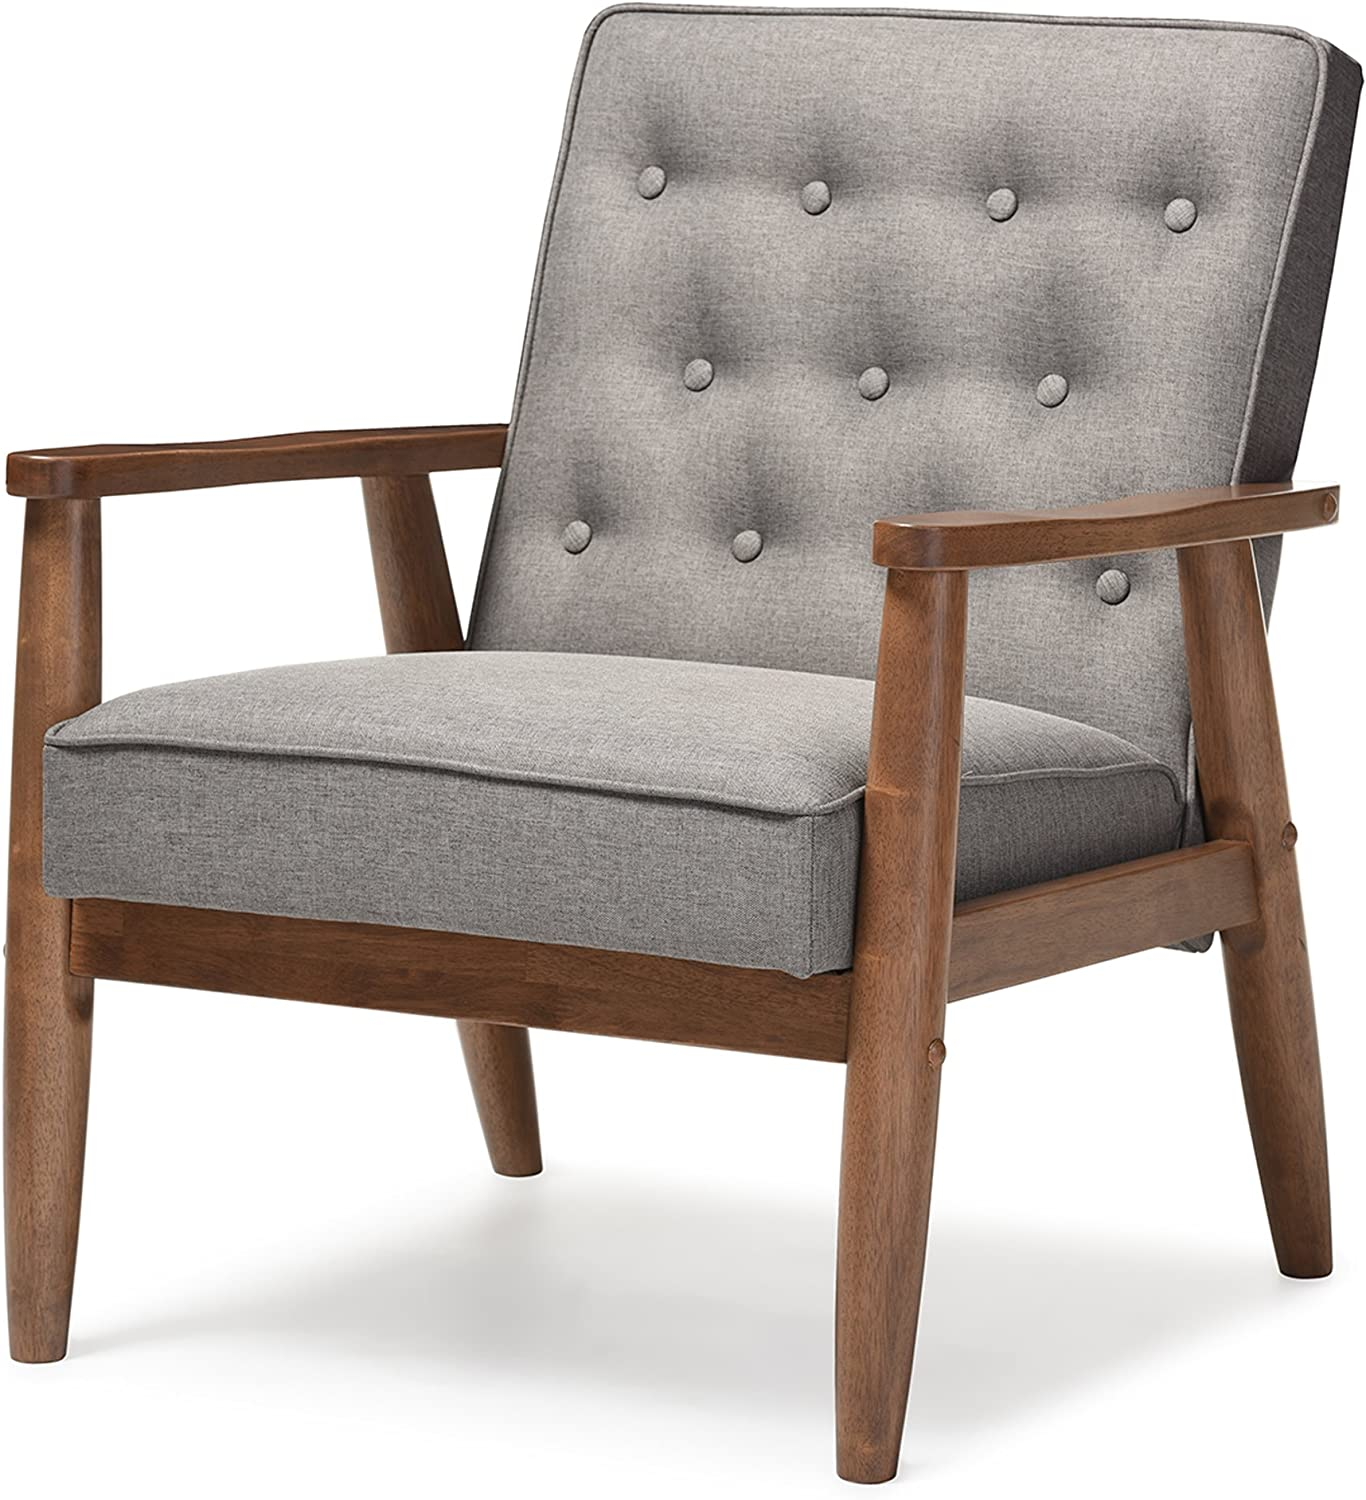 Mid-Century Wooden Lounge Chair